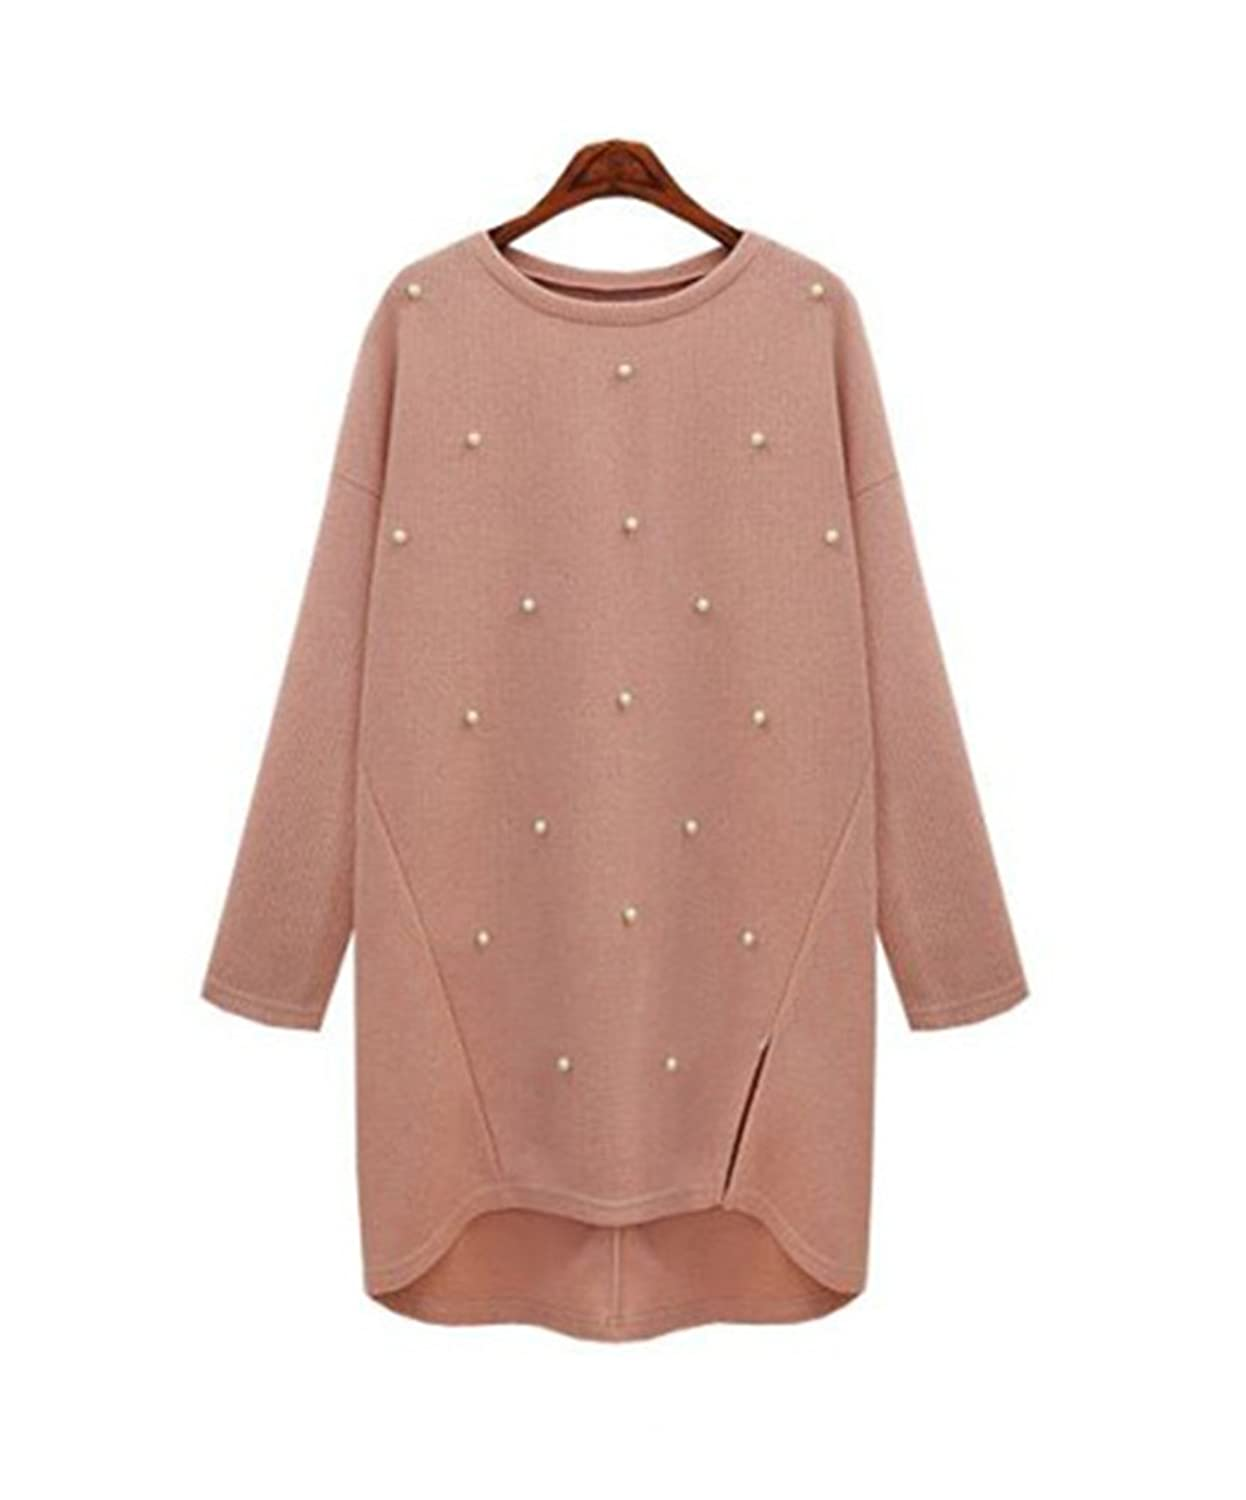 Huafeiwude Womens Round Neck Bead Loose Irregular Knitted Long Pullover Sweater